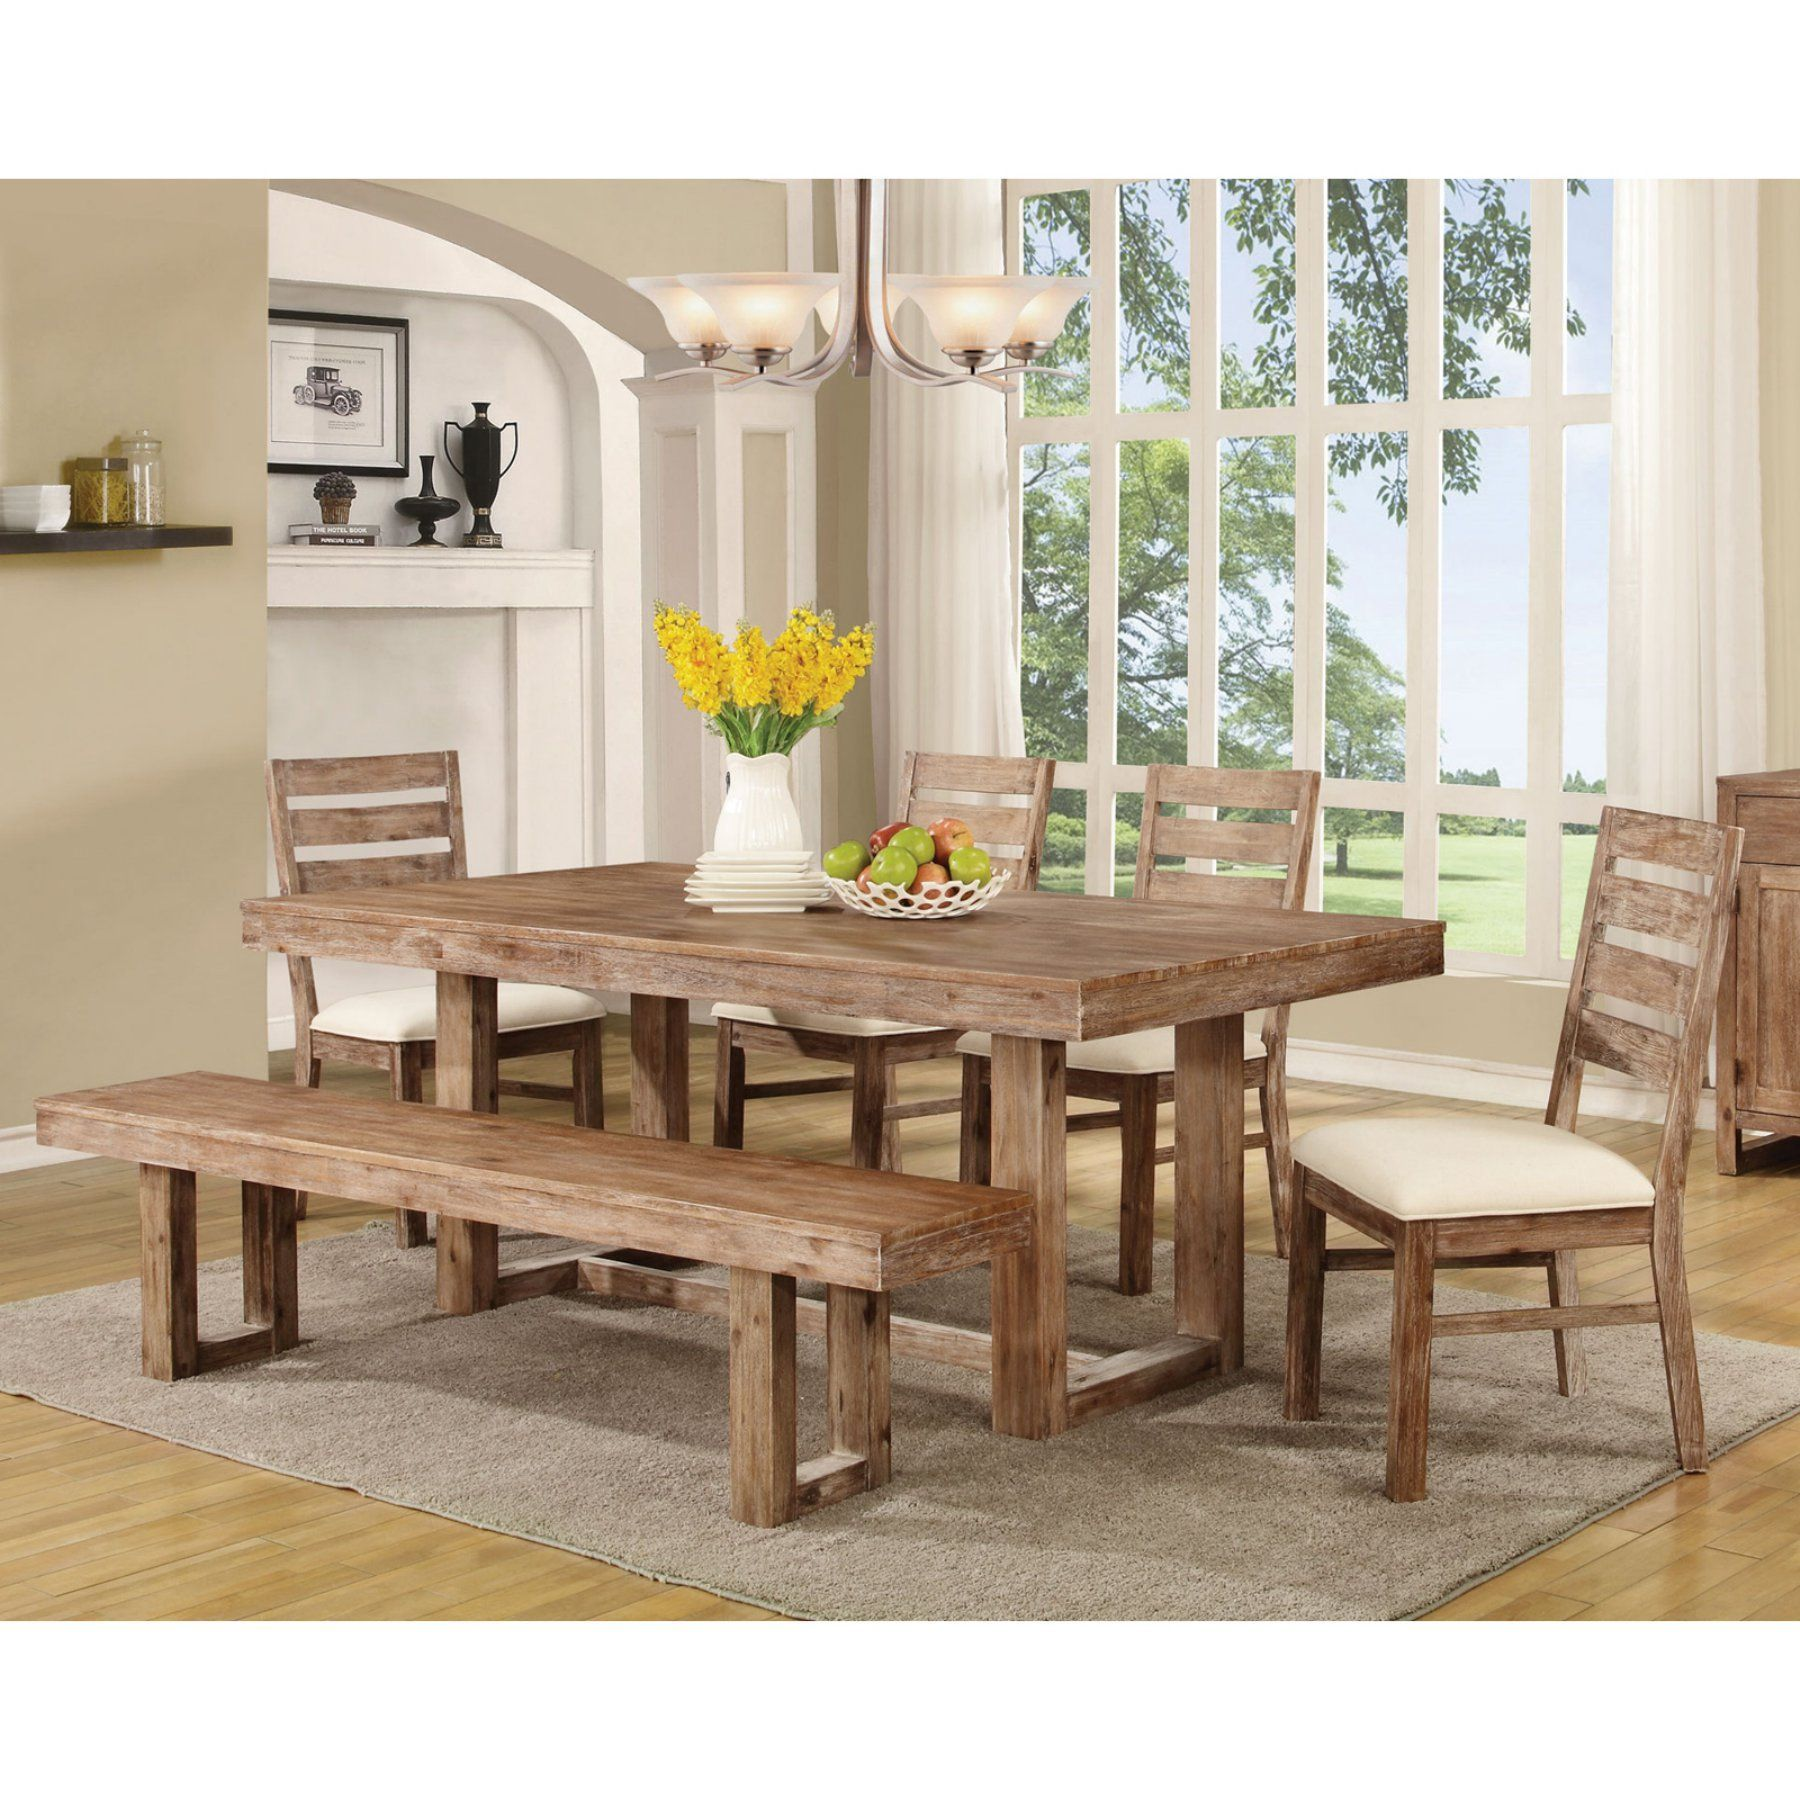 Coaster Furniture Coaster Elmwood 6 Piece Dining Table Set Pleasing Coaster Dining Room Furniture Design Inspiration